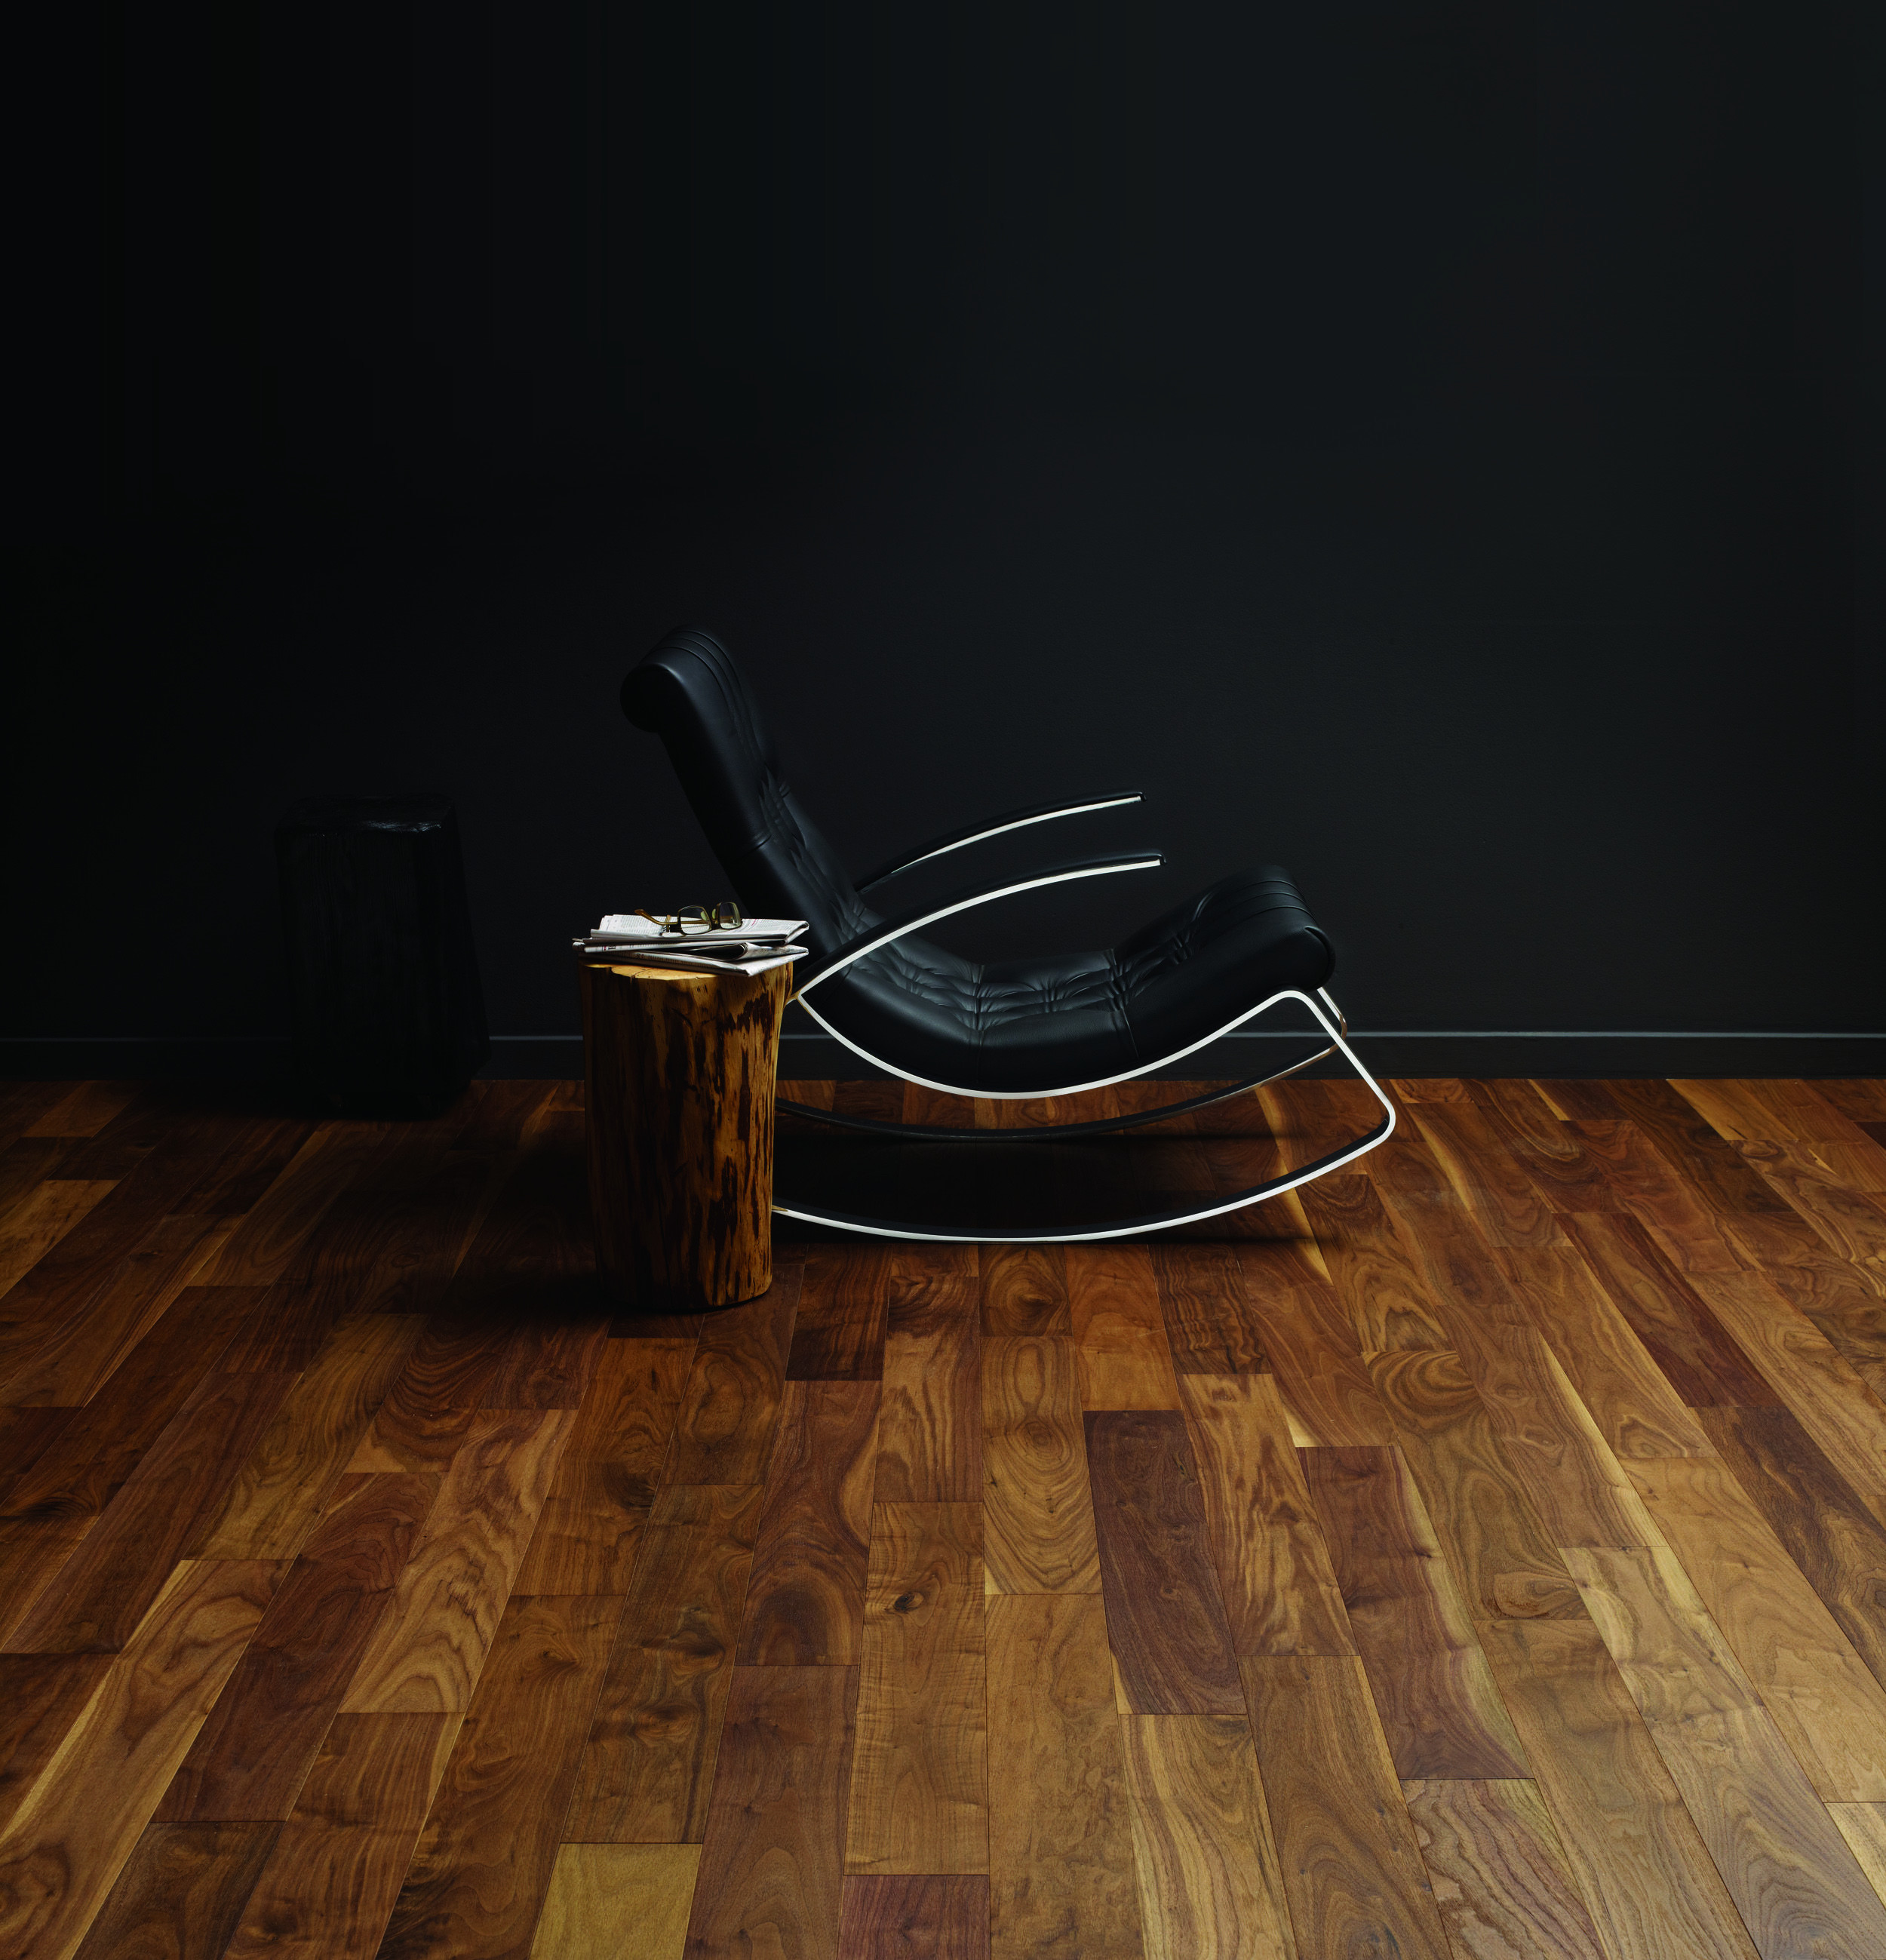 homerwood hardwood flooring prices of kentwood brushed american walnut natural ideas for around the throughout kentwood brushed american walnut natural walnut wood floors hardwood floors kentwood flooring chair